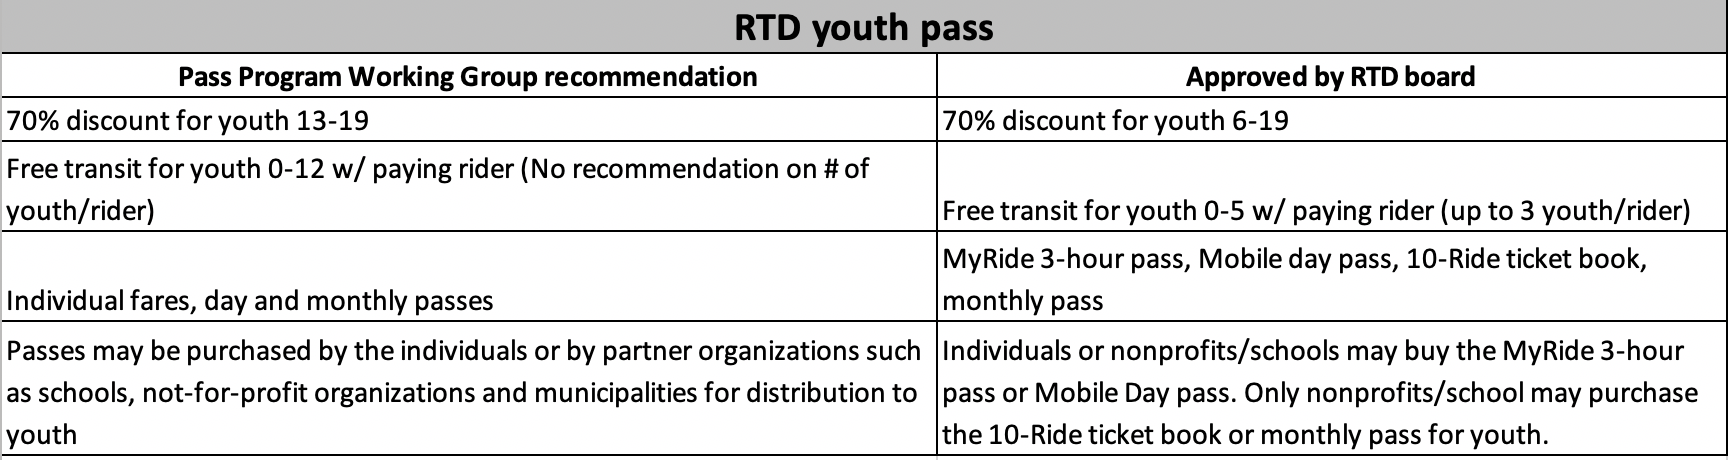 rtd-youth-pass